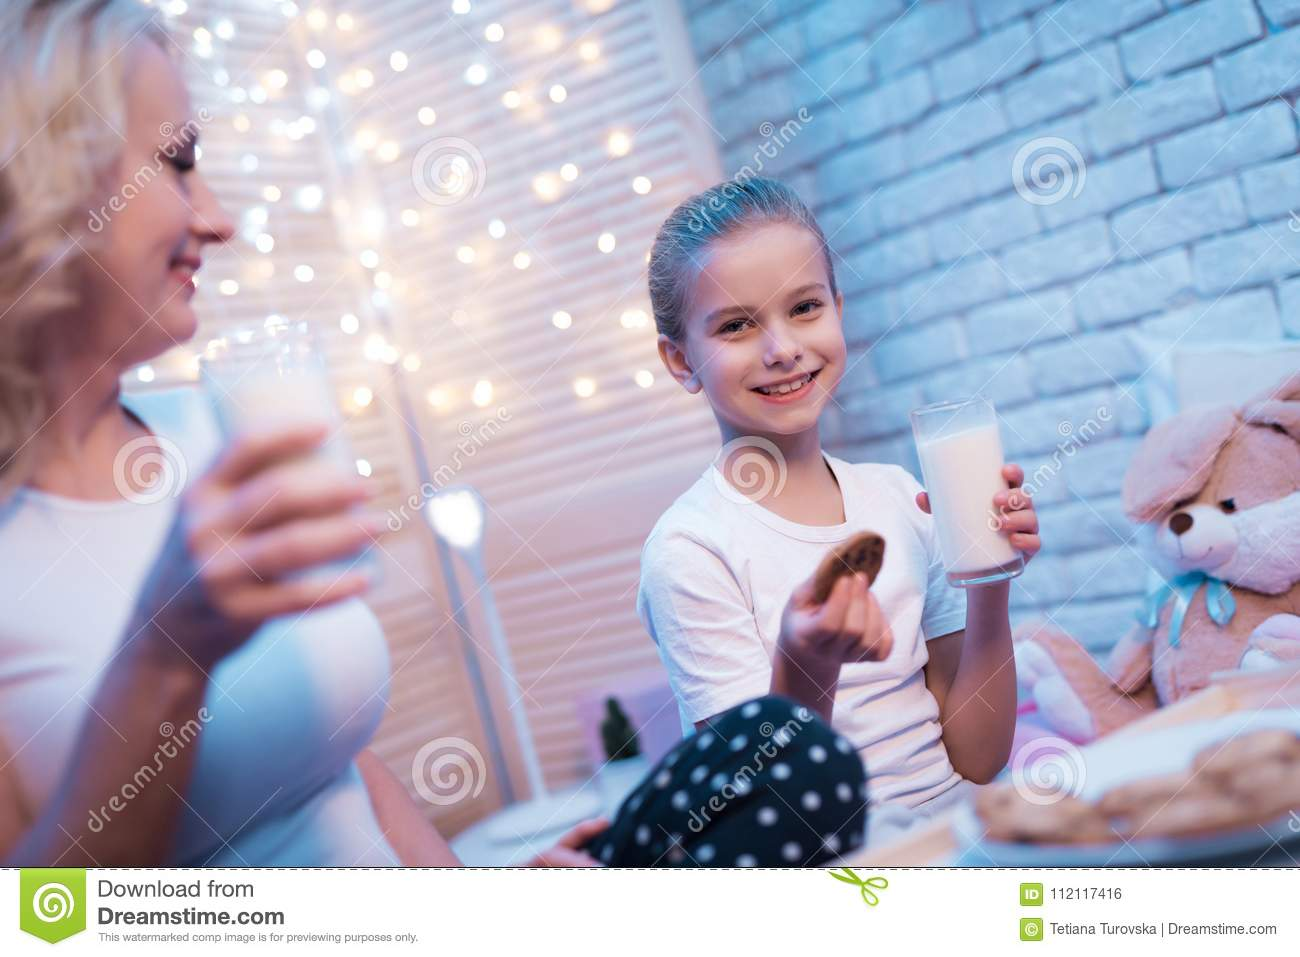 Grandmother and granddaughter are enjoying milk and cookies at night at home.